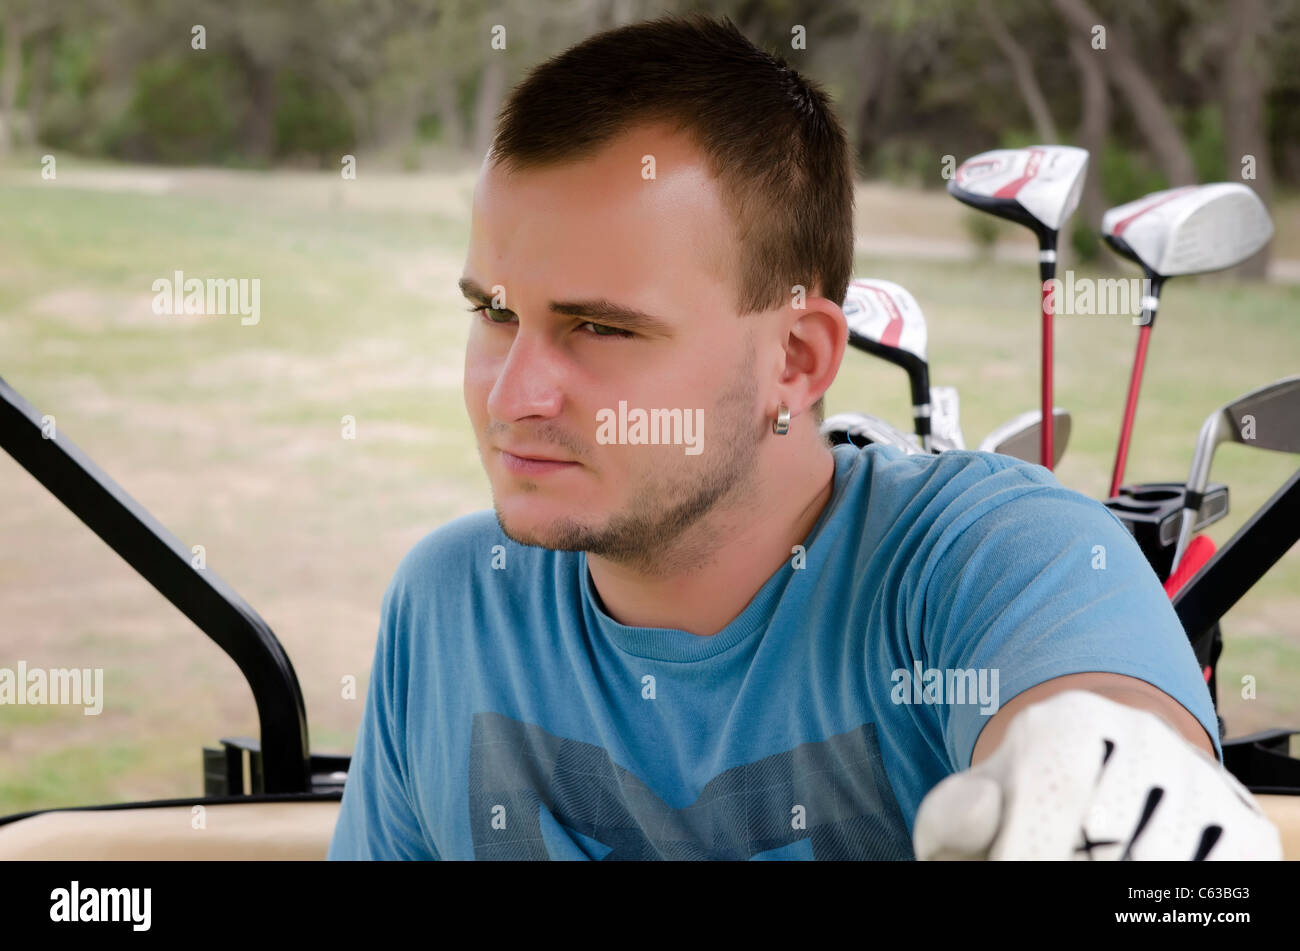 Young player riding golf cart - Stock Image